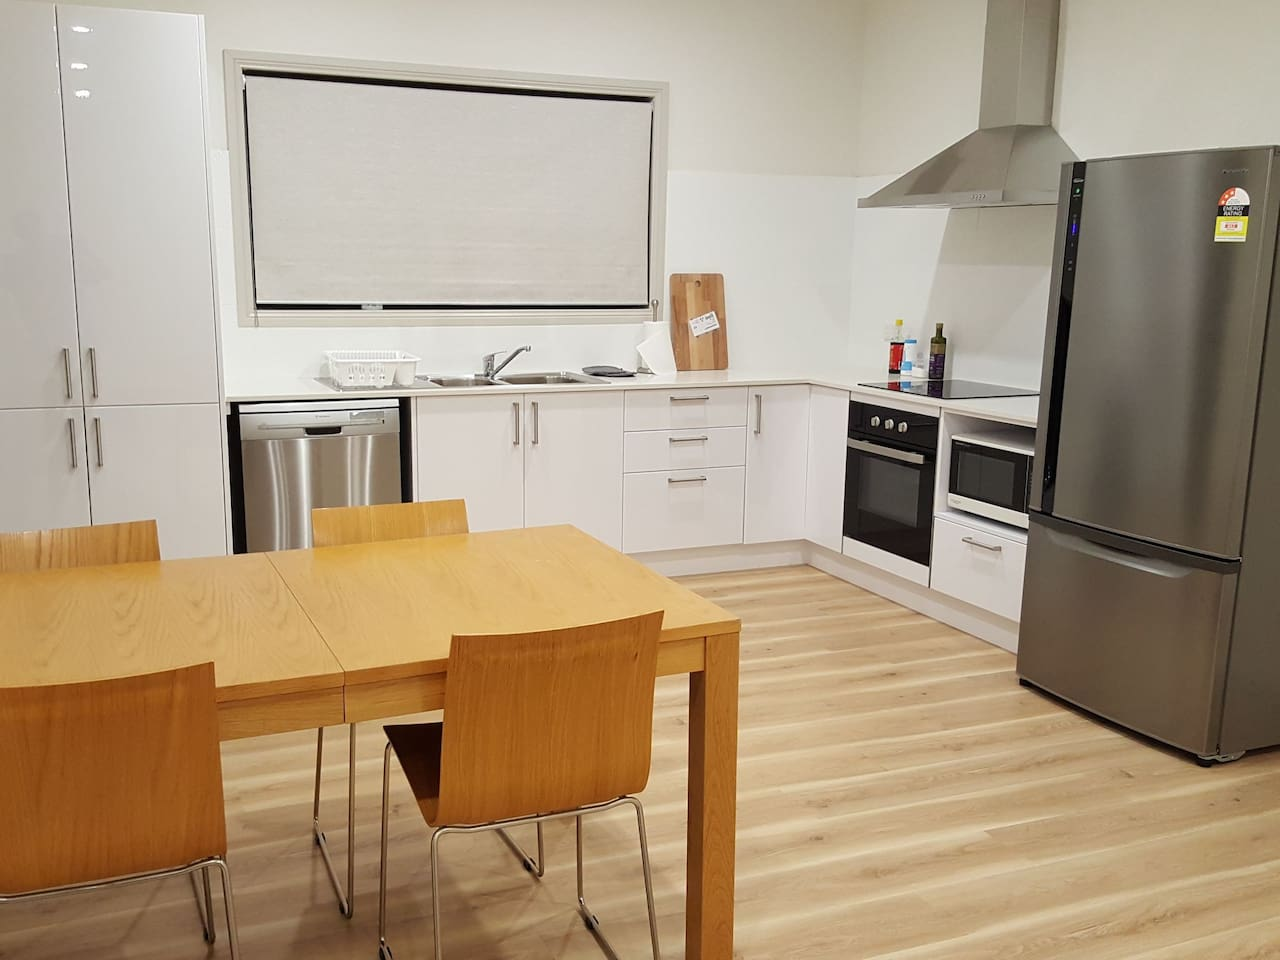 kitchen with induction cooktop, oven and dishwasher